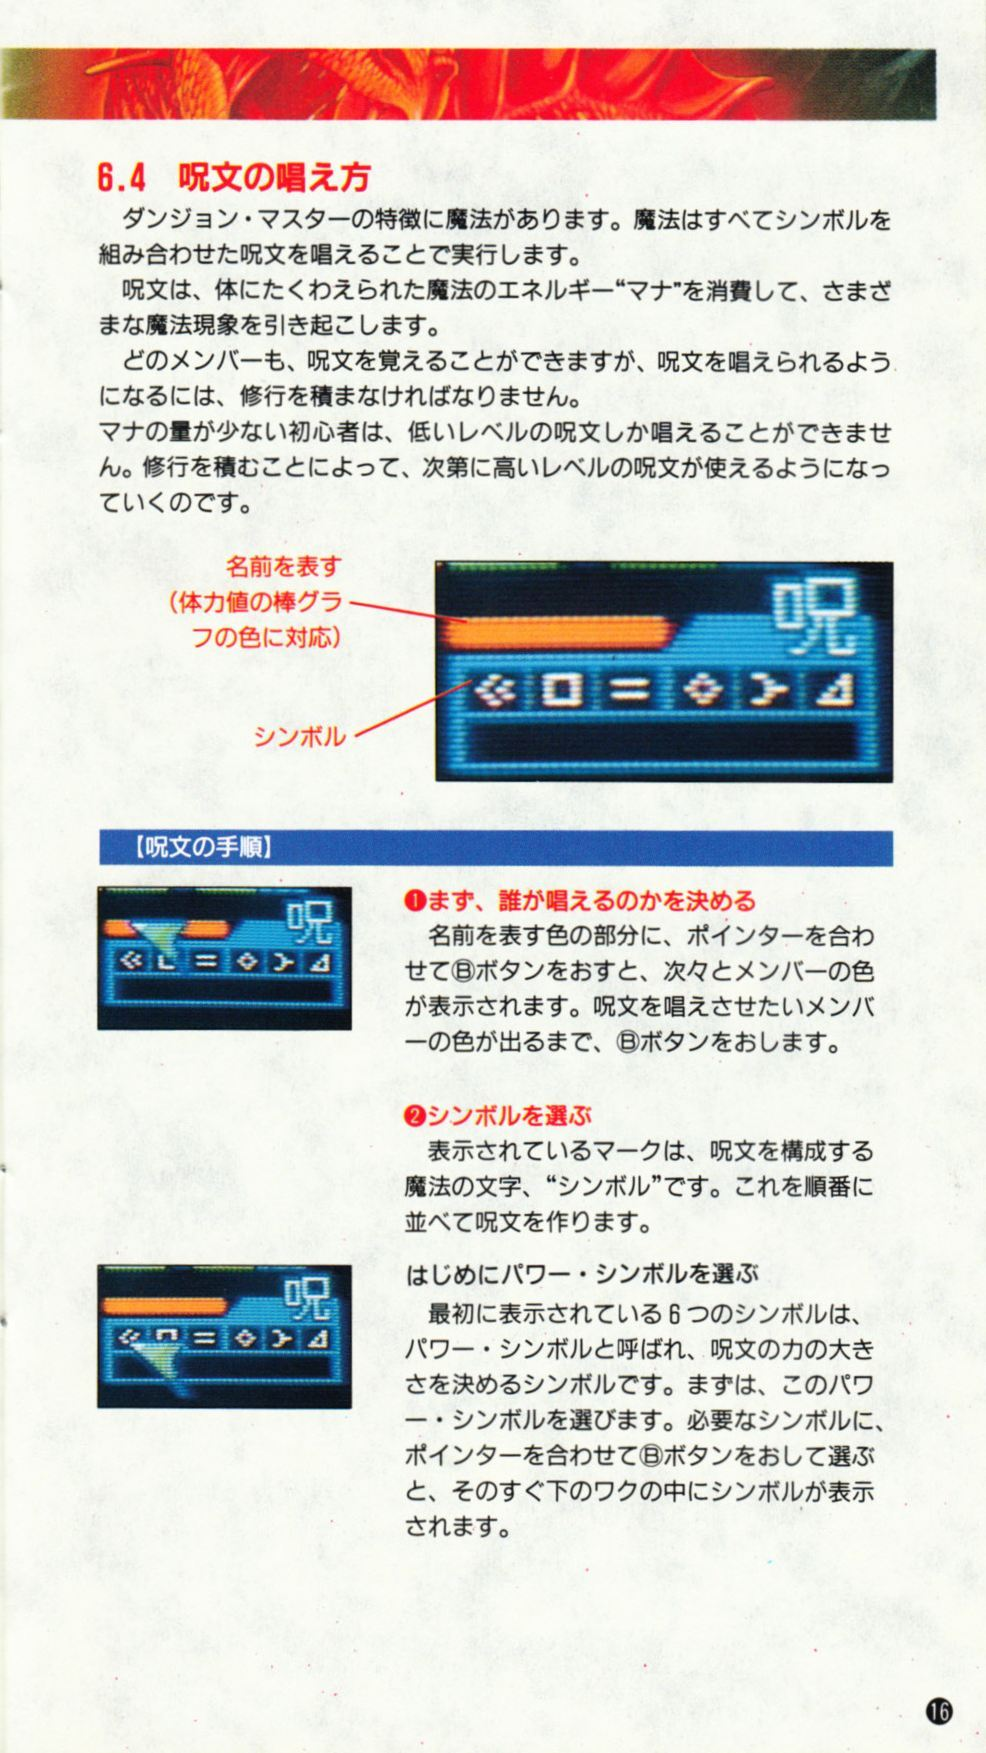 Game - Dungeon Master - JP - Super Famicom - Manual - Page 019 - Scan